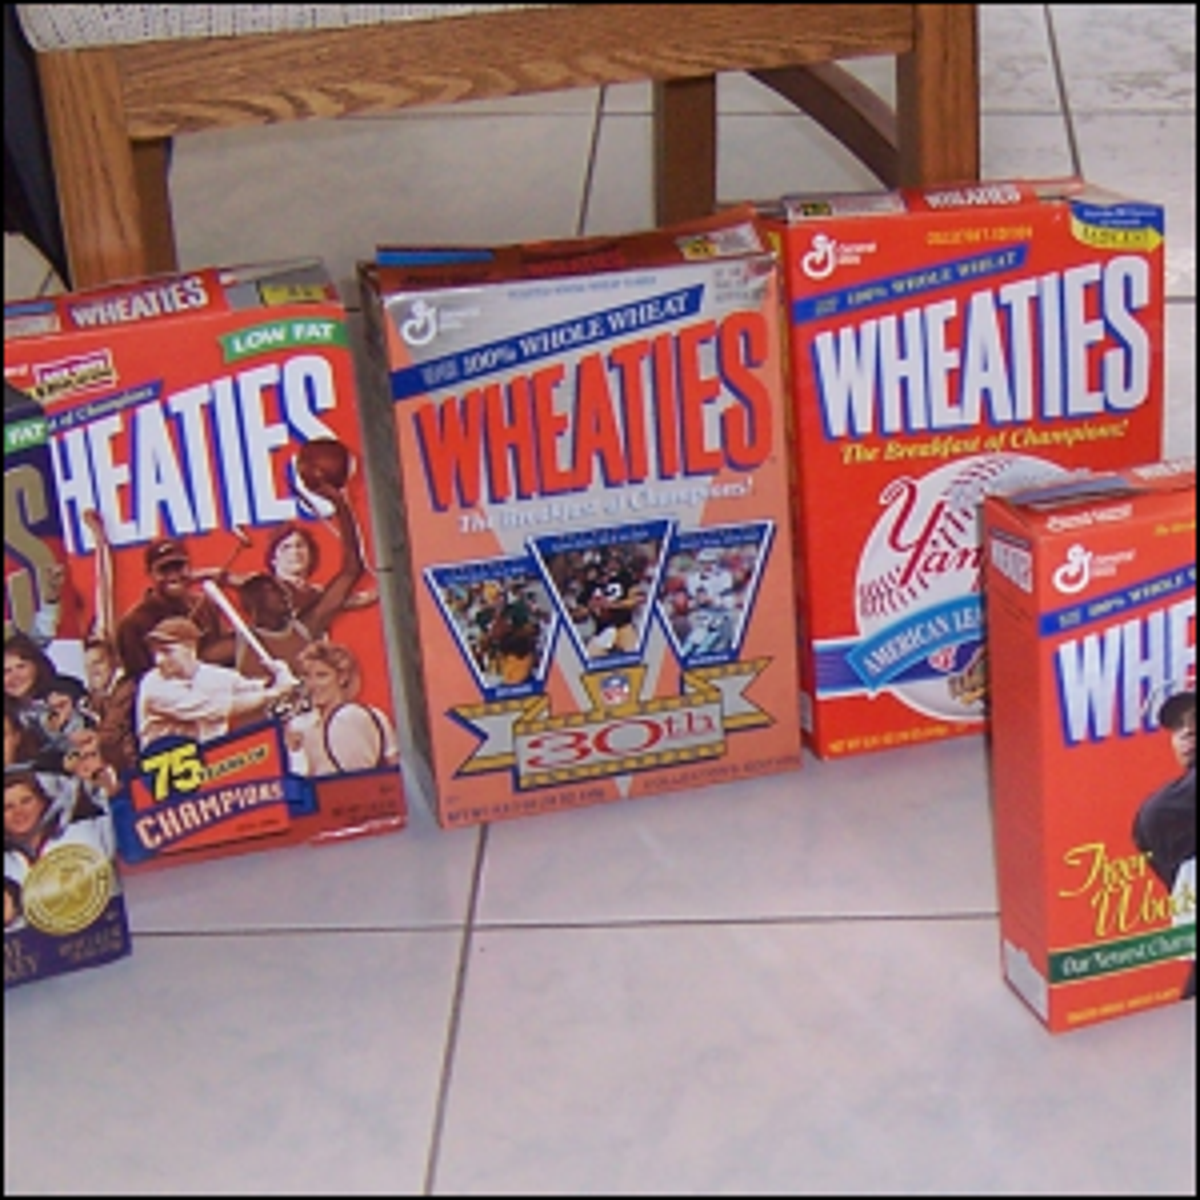 Wheaties boxes from the late 1990s and forward that feature athletes and teams on the front of the box.